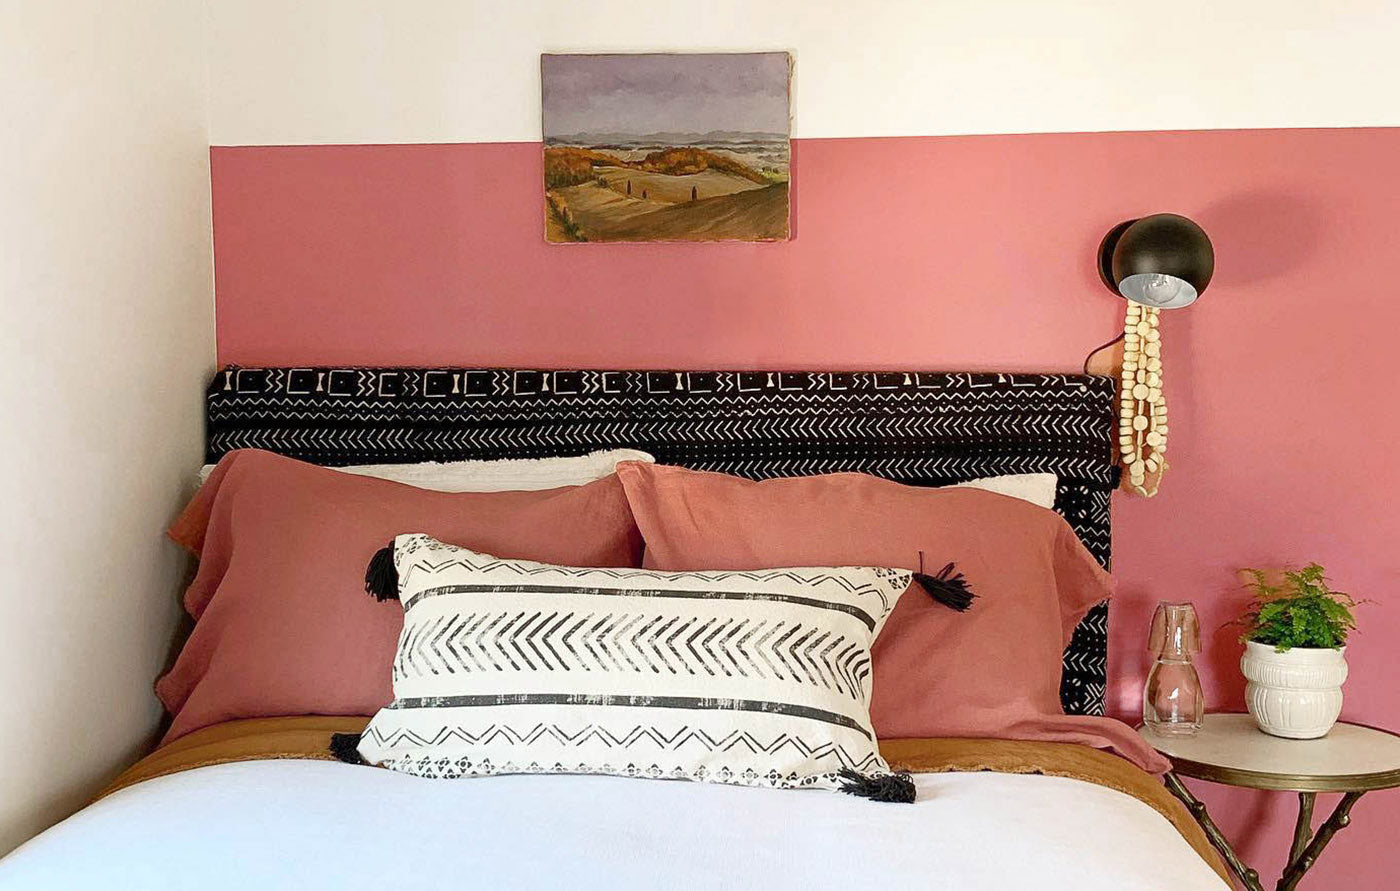 How to create a welcoming guest room for houseguests, featuring pink paint color Pink Sky by Clare.